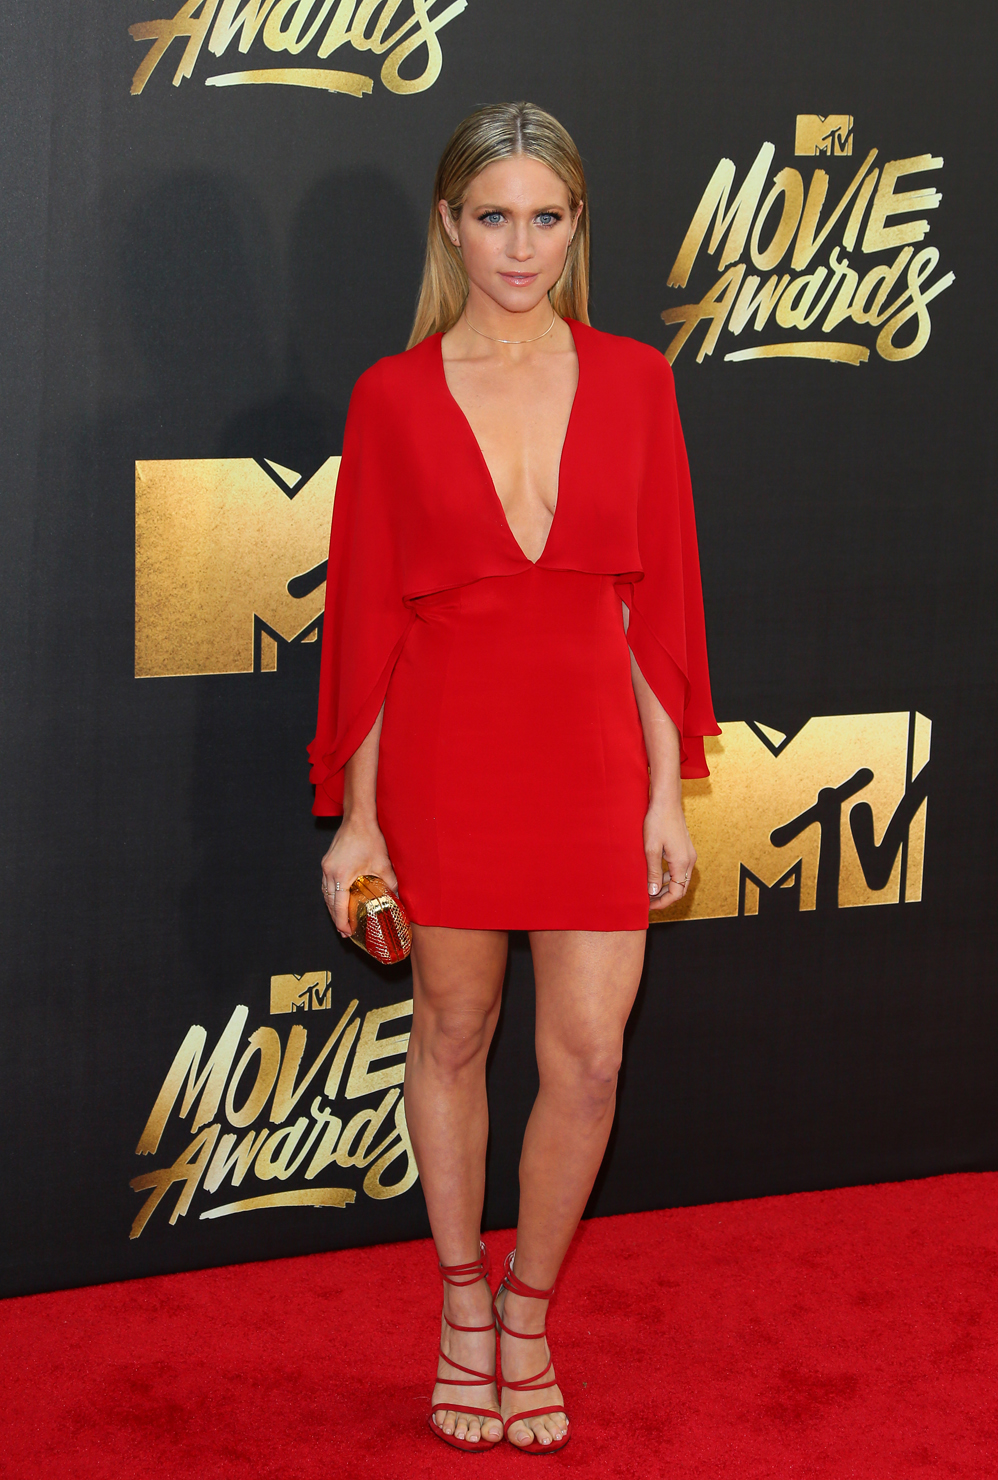 Actress Brittany Snow attends the 2016 MTV Movie Awards in Burbank, California, on April 9, 2016. / AFP PHOTO / JEAN BAPTISTE LACROIX